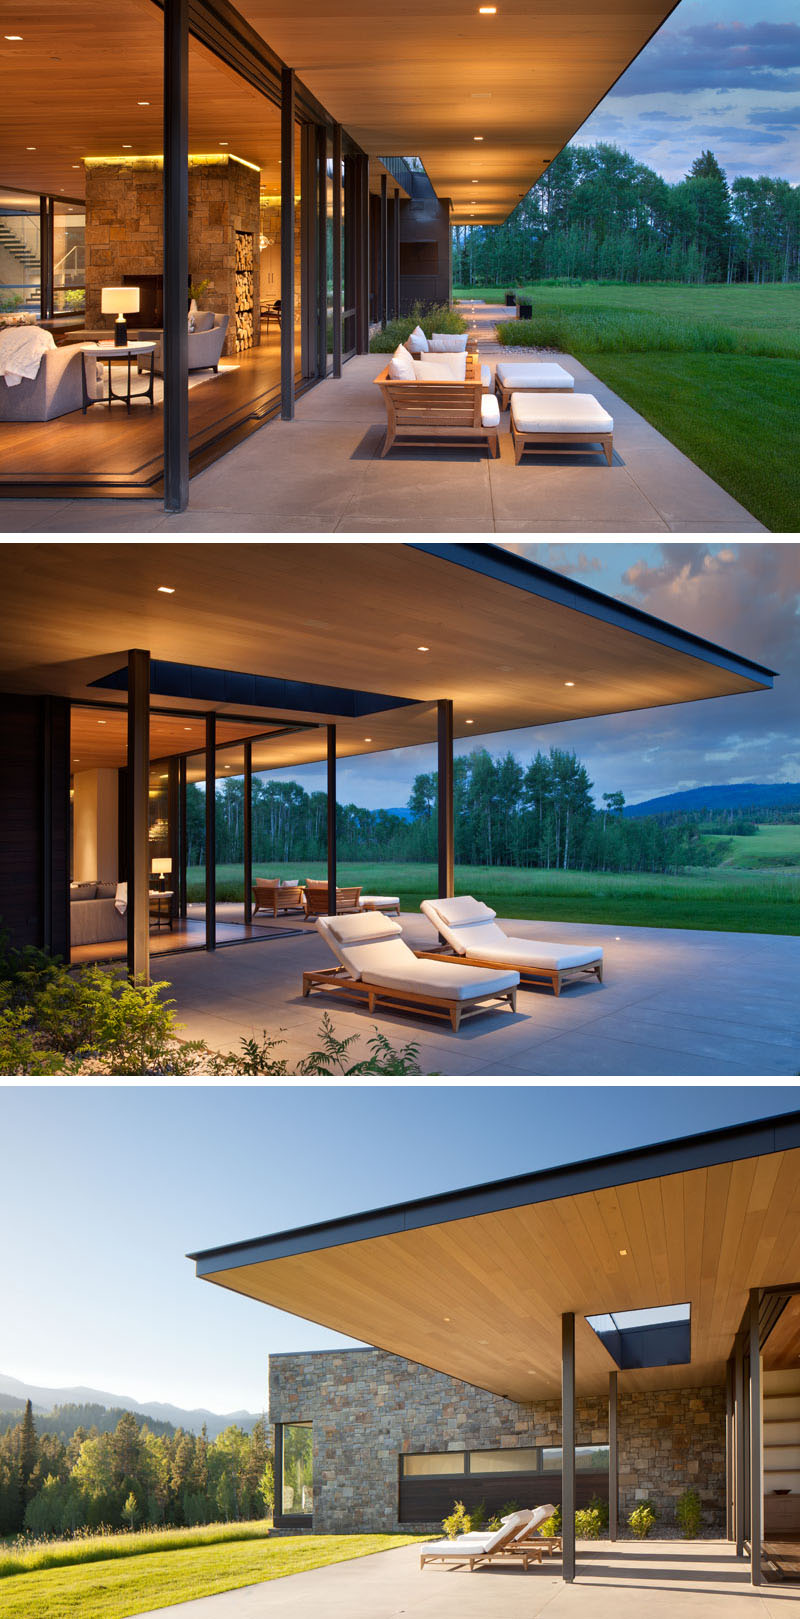 This modern house has sliding glass walls that open the living room to the outdoors, and the wood ceiling featured inside, continues through to the exterior of the house. #ModernHouse #WoodCeiling